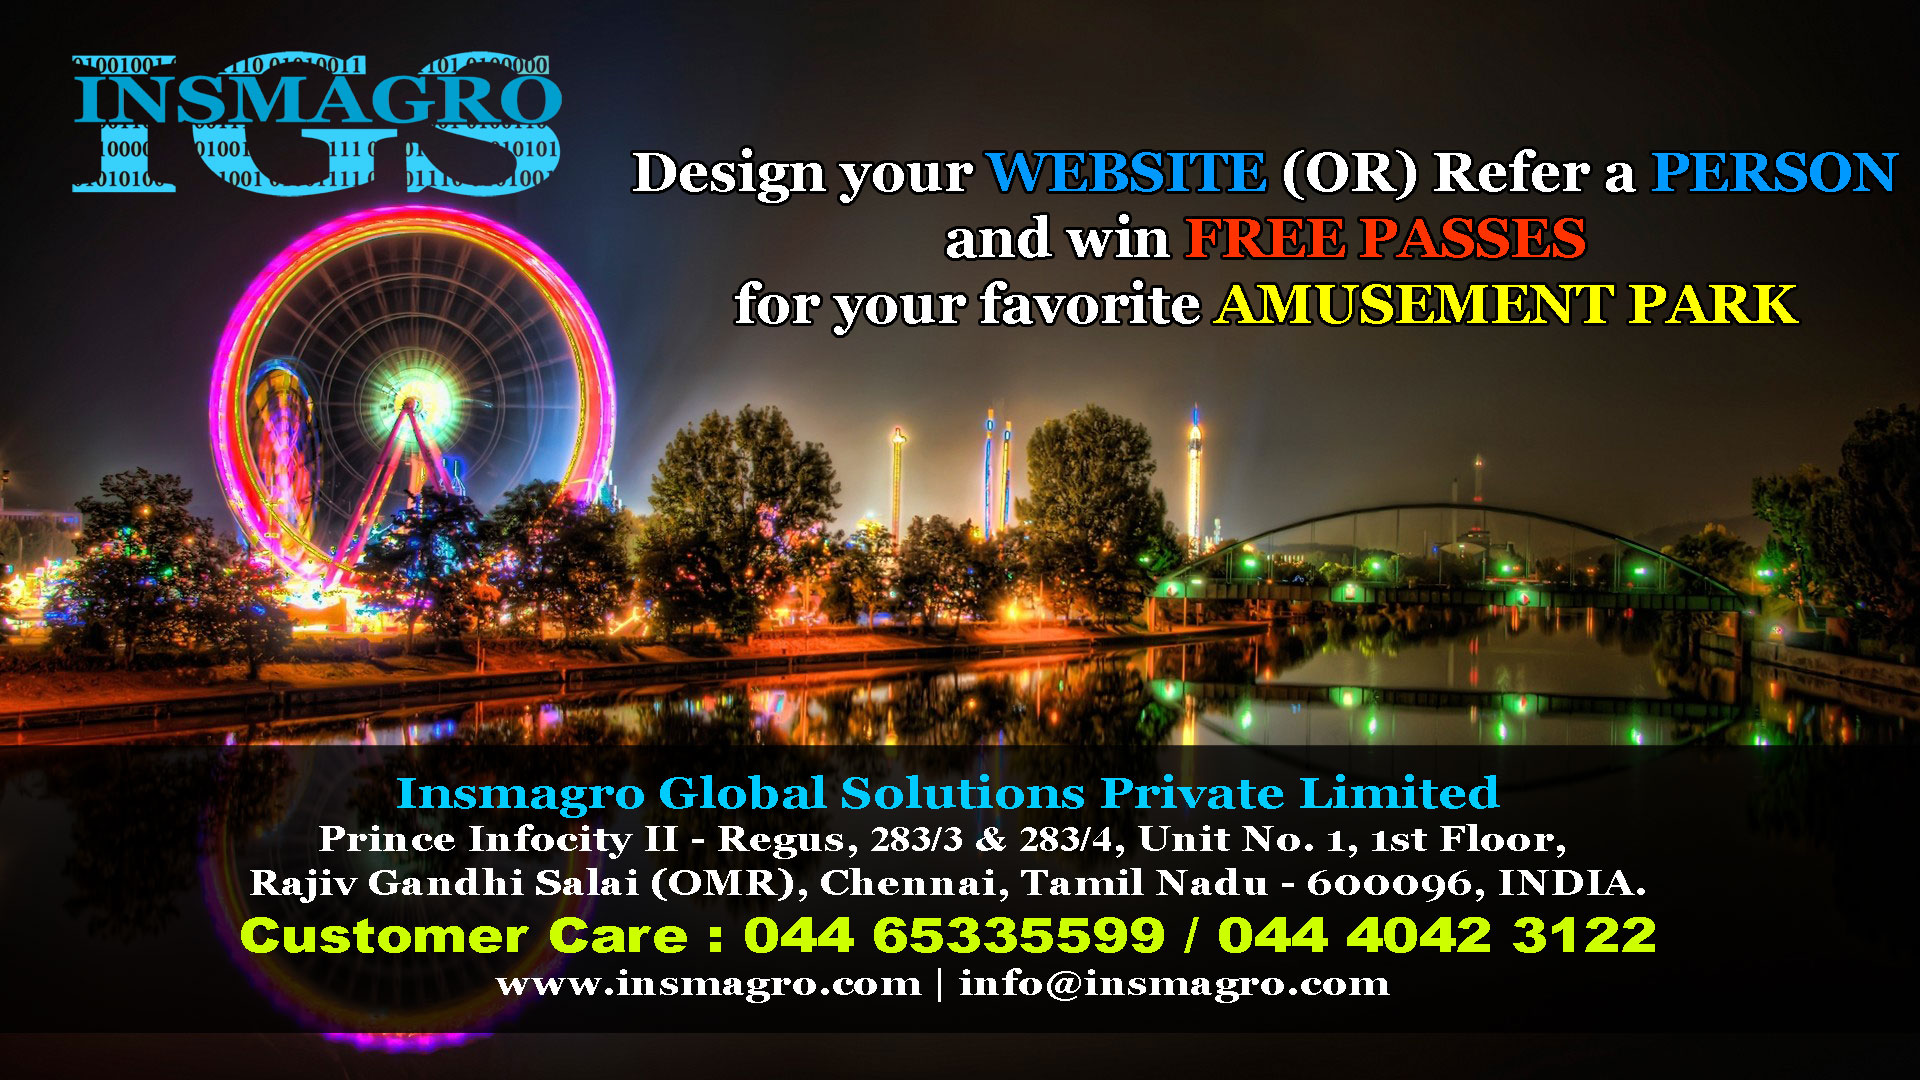 Design your website and win free passes for amusement park..!!!